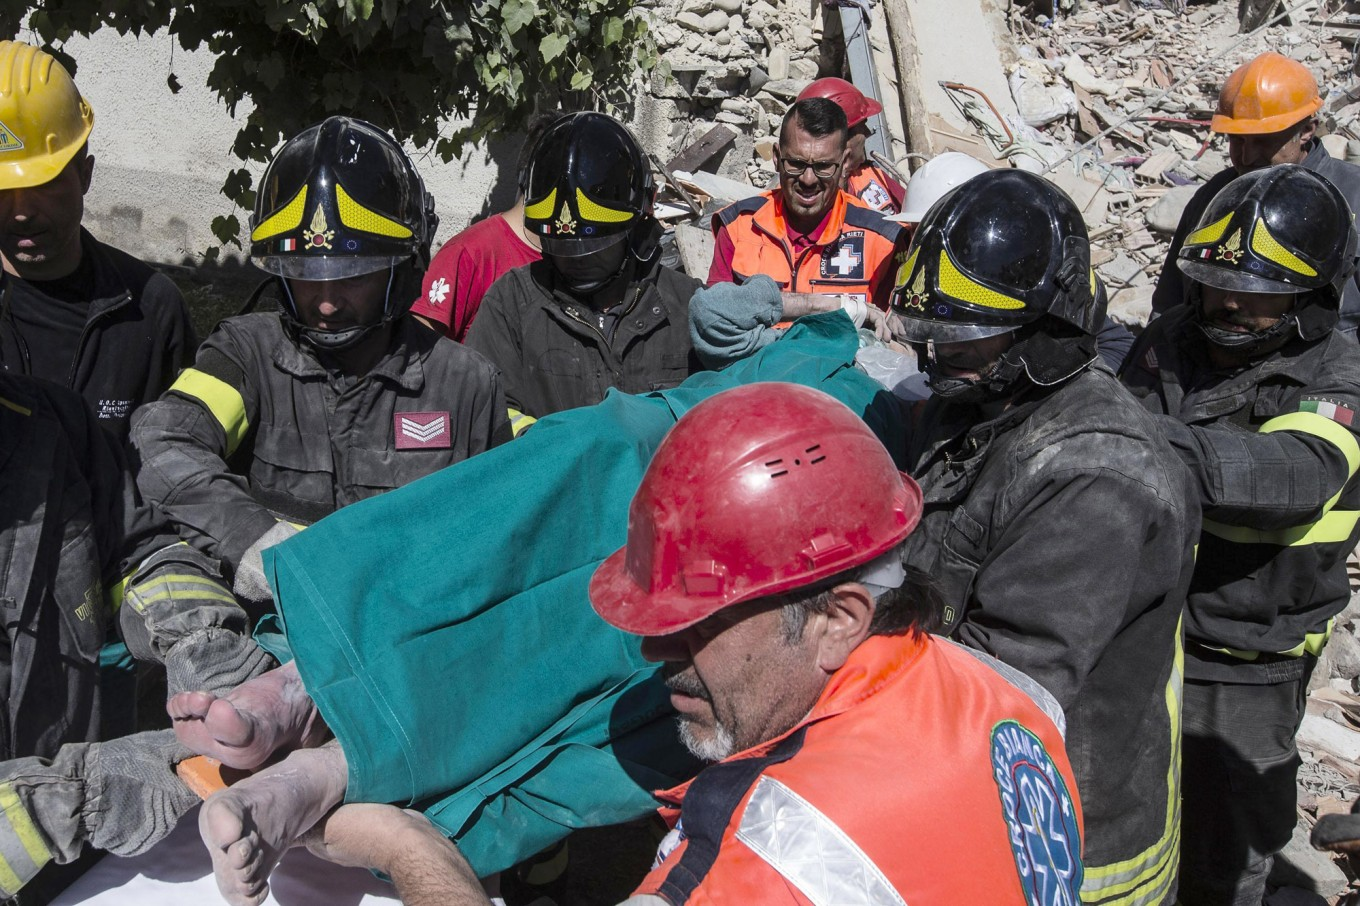 An injured man is carried on a stretcher by rescuers following an earthquake in Accumoli, central Italy, Wednesday, Aug. 24, 2016. The magnitude 6 quake struck at 3:36 a.m. [0136 GMT] and was felt across a broad swath of central Italy, including  Rome, where residents felt a long swaying followed by aftershocks. The temblor shook the Lazio region and Umbria and Le Marche on the Adriatic coast. Angelo Carconi/ANSA via AP